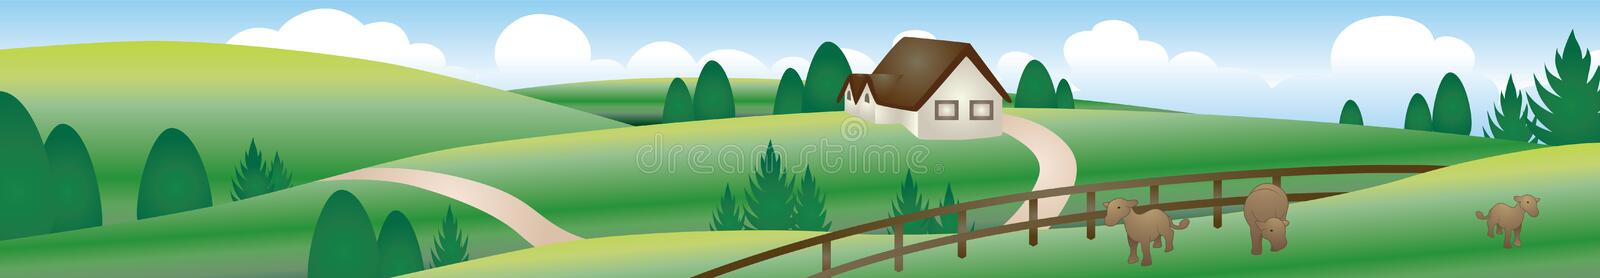 Download Farm stock vector. Image of view, scenery, green, cloud - 12912888